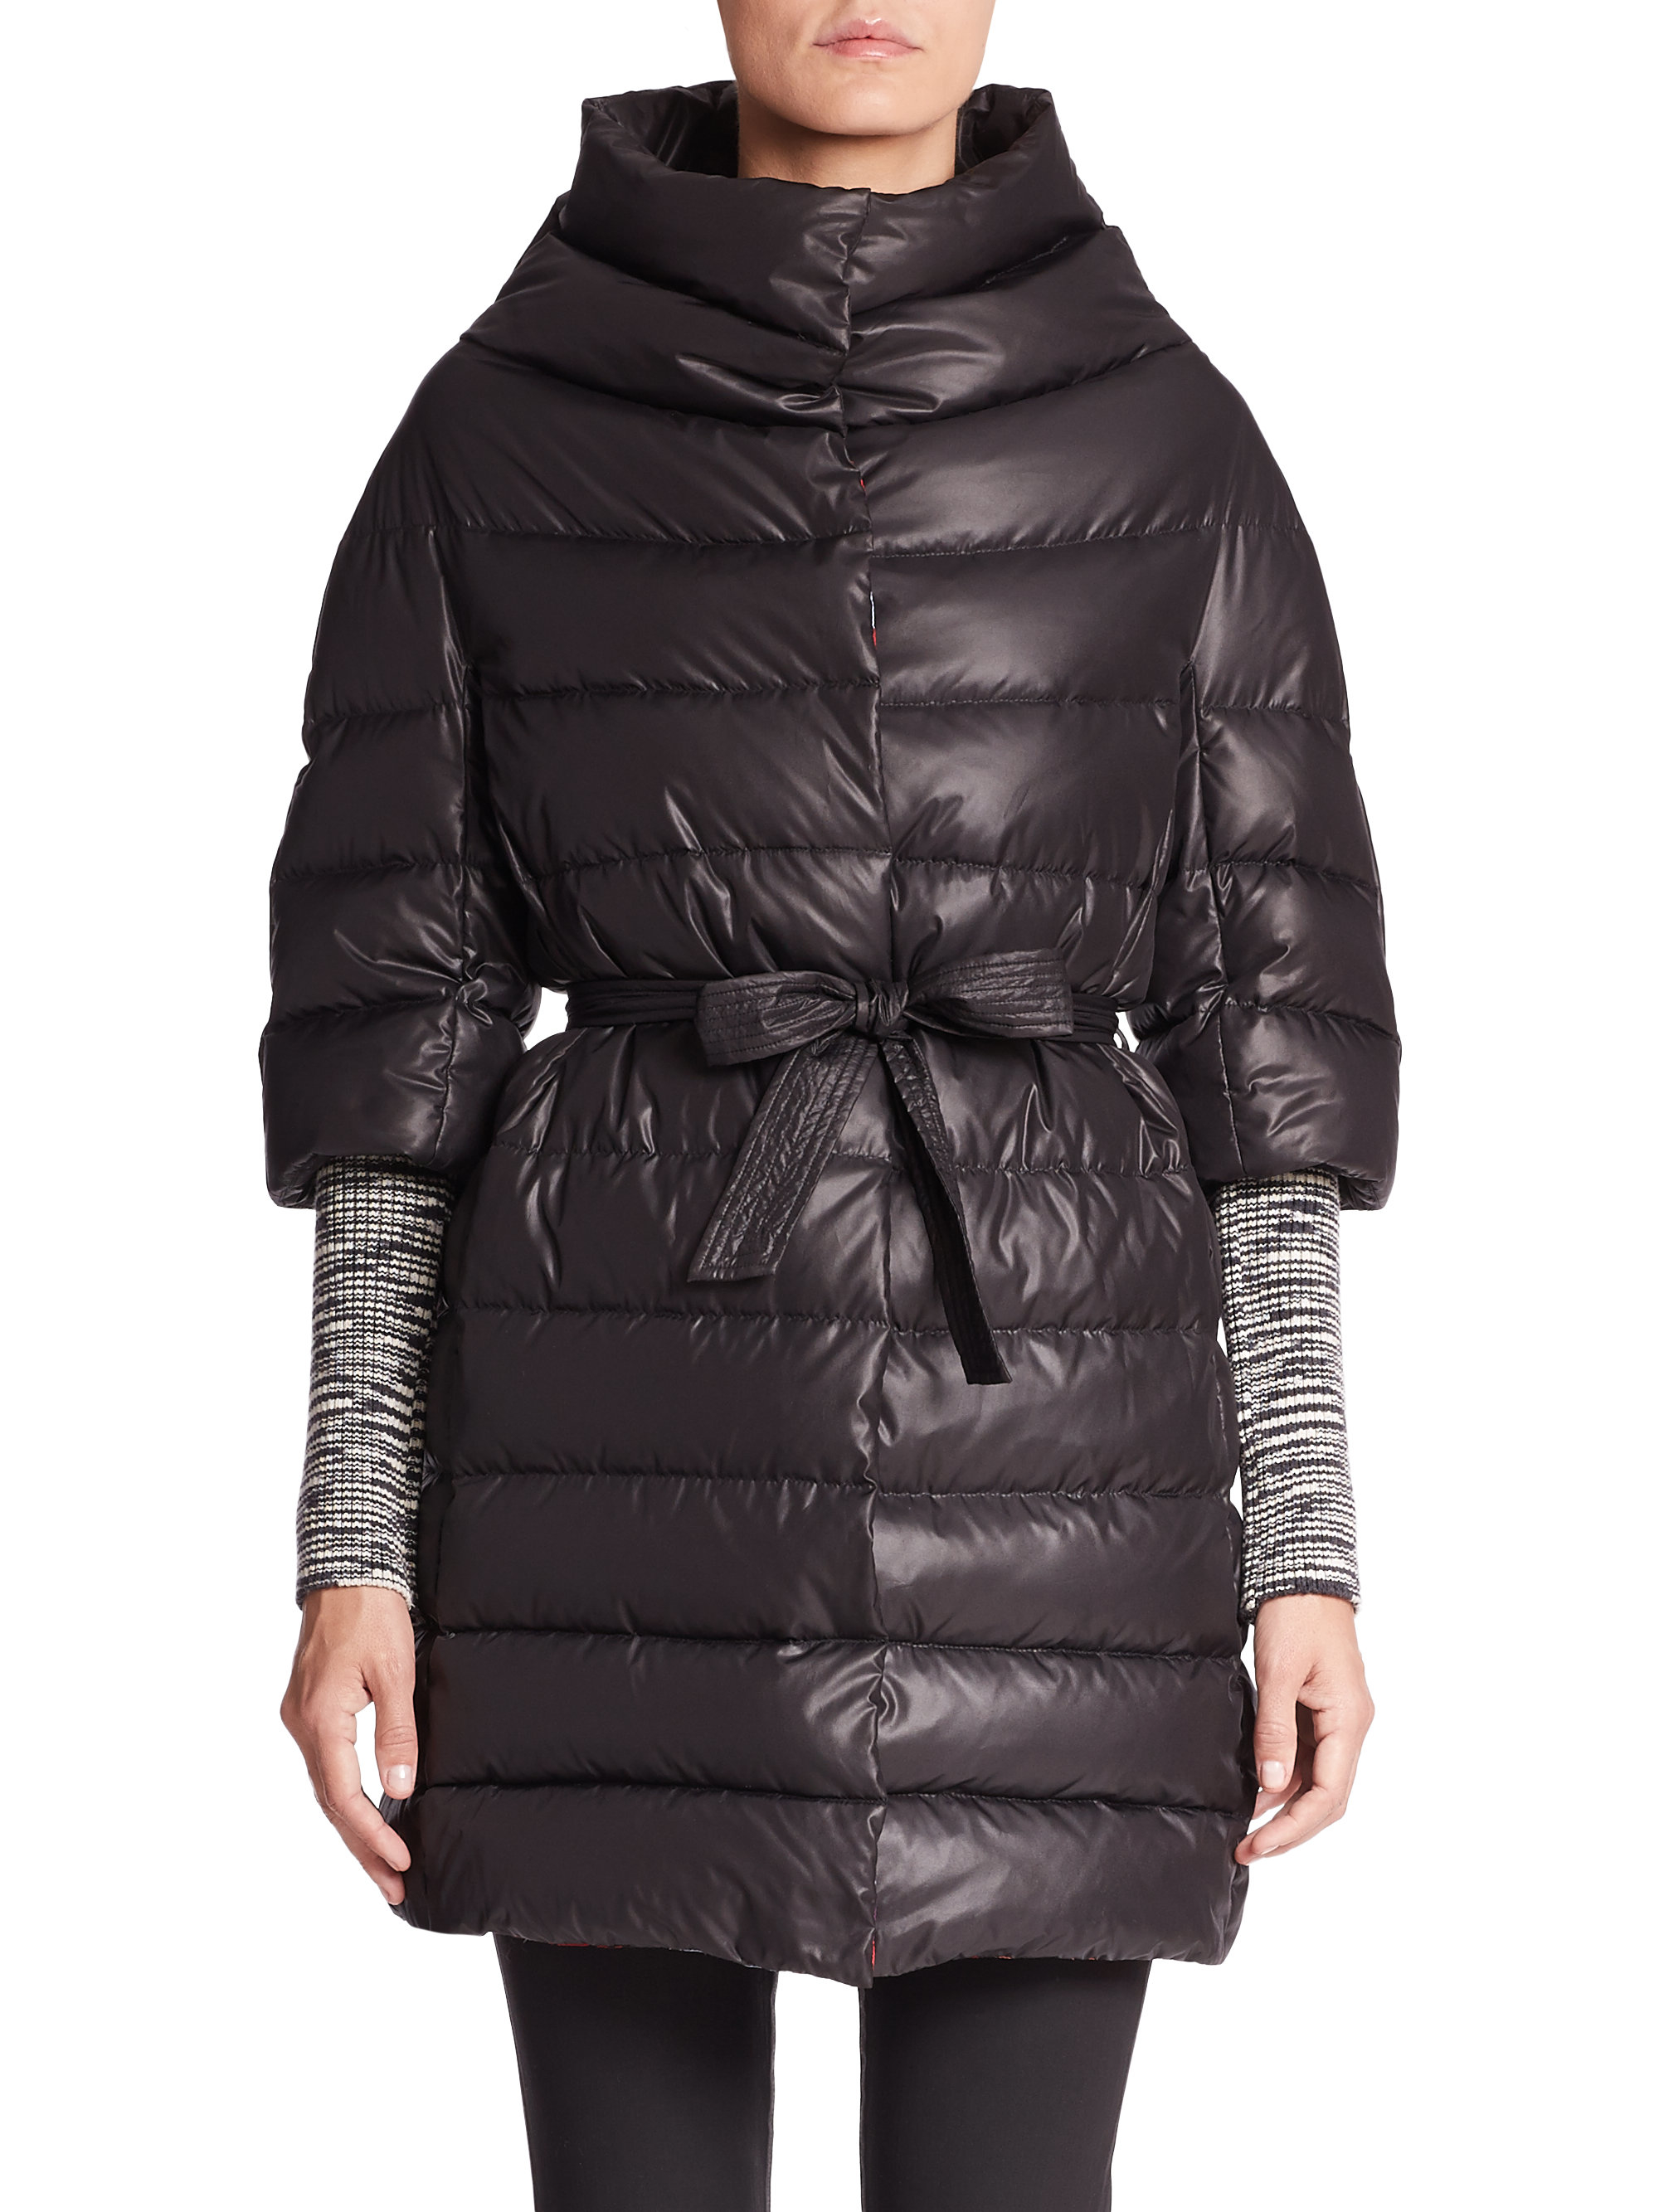 Designer Quilted Coats Burberry Brit Quilted Trench Coat